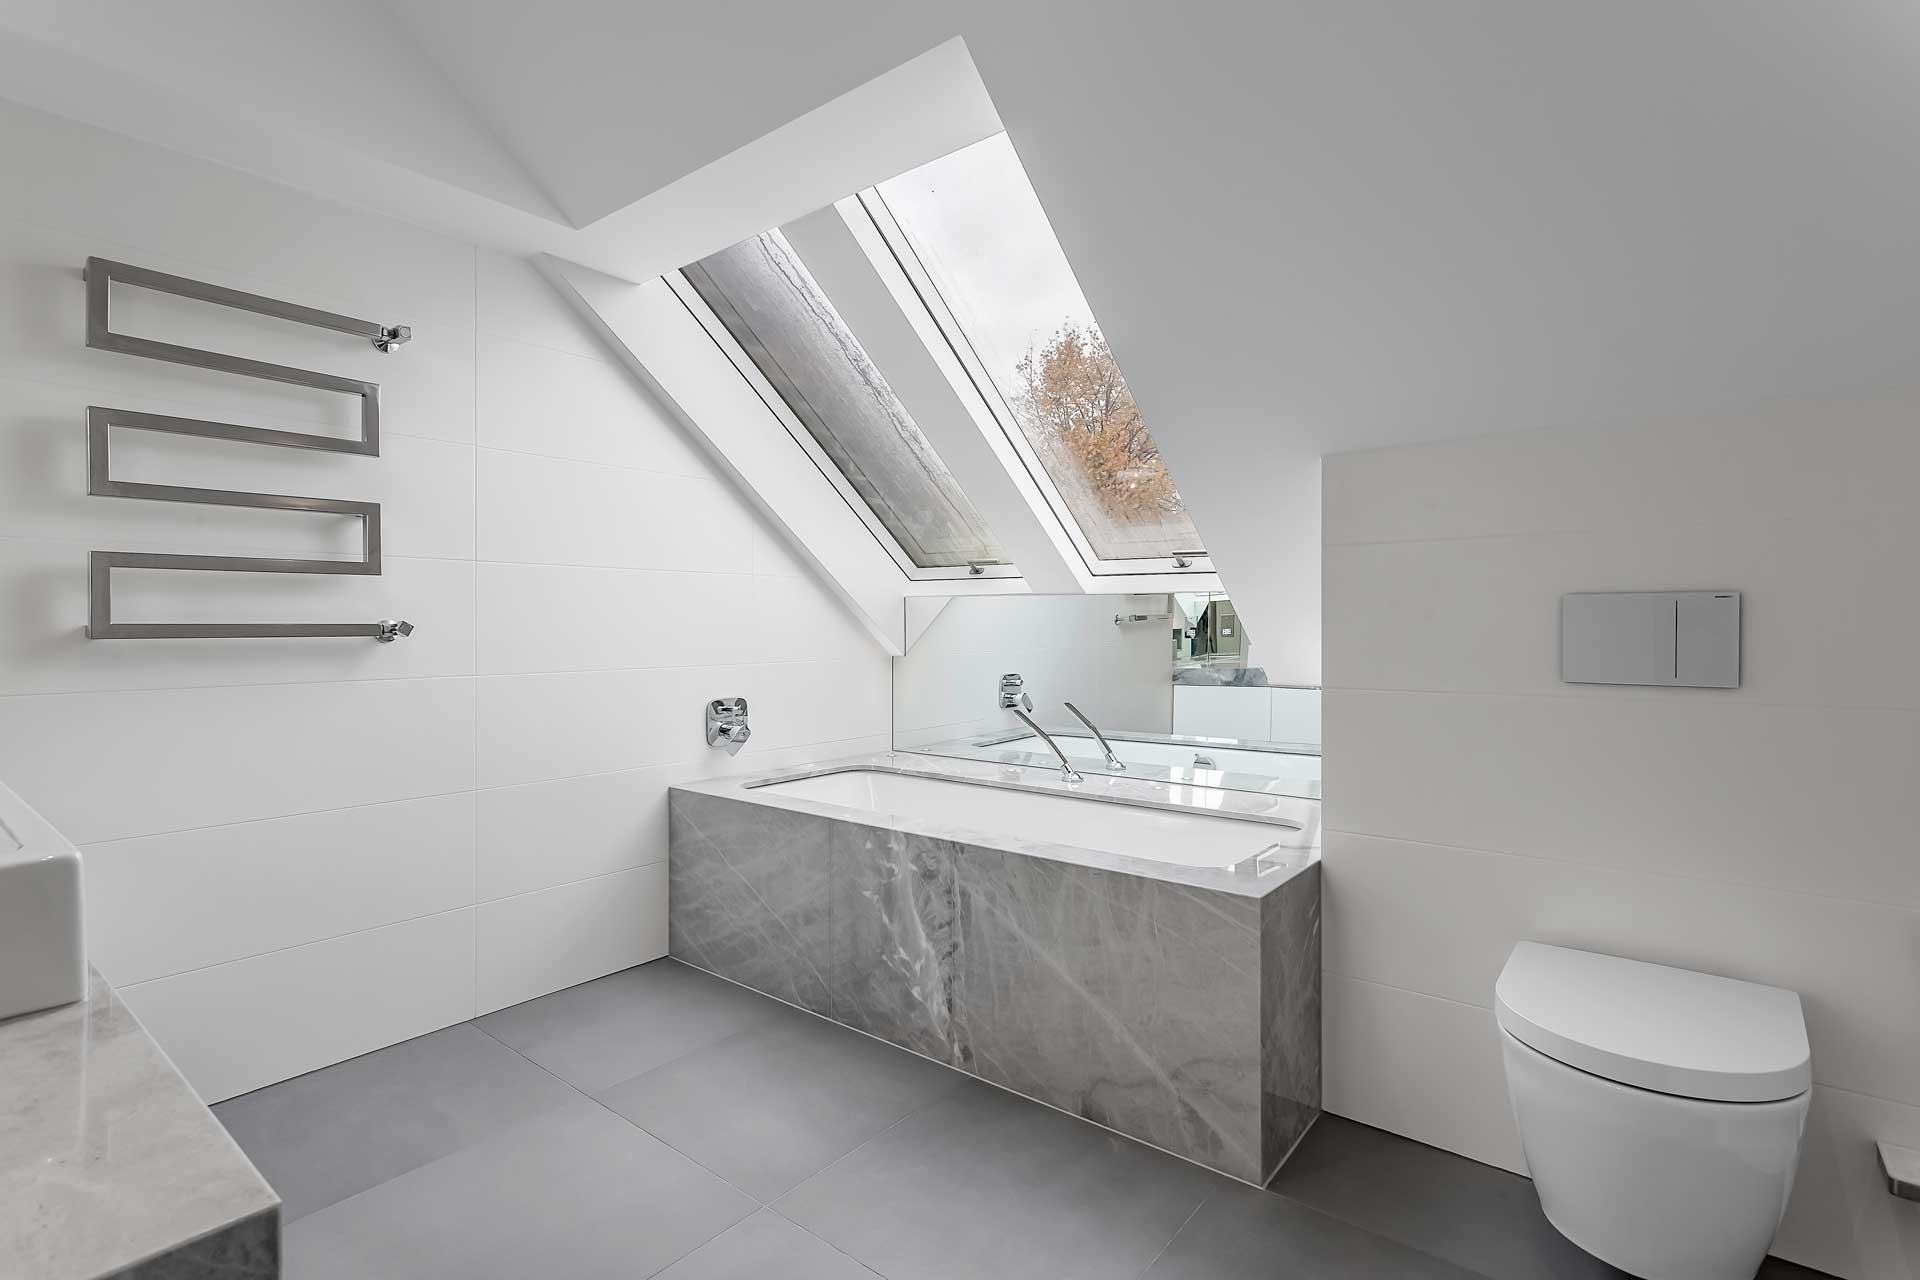 Helix Gardens Brixton Full Renovation And Extension With New Basement 01